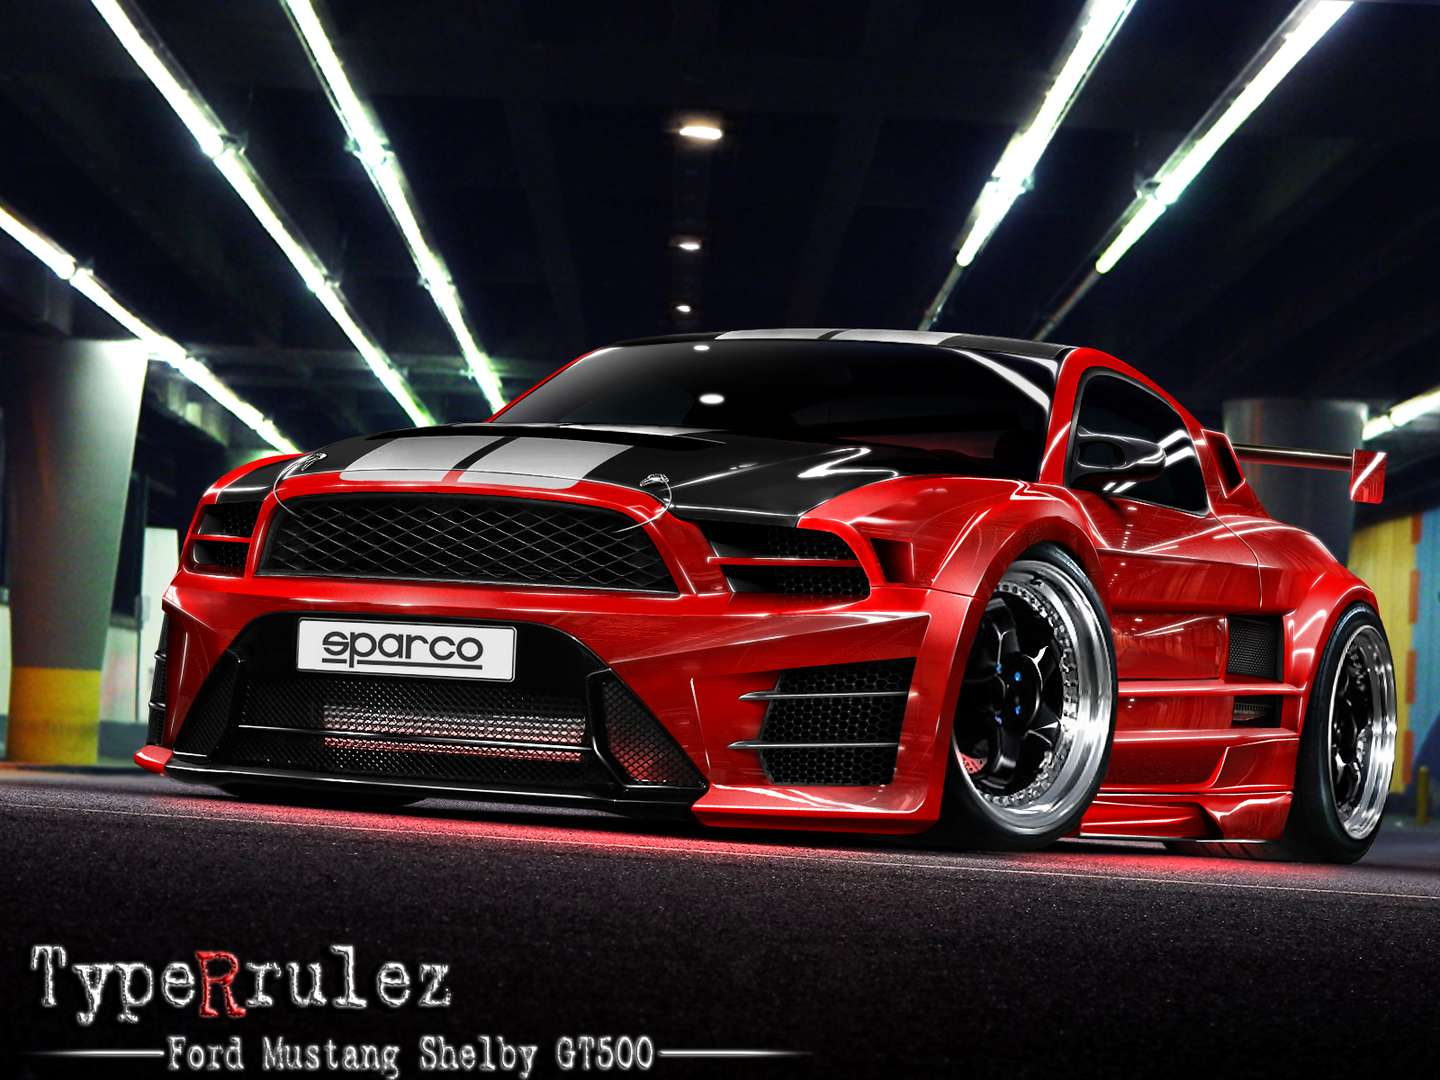 Ford Mustang Shelby #7077085